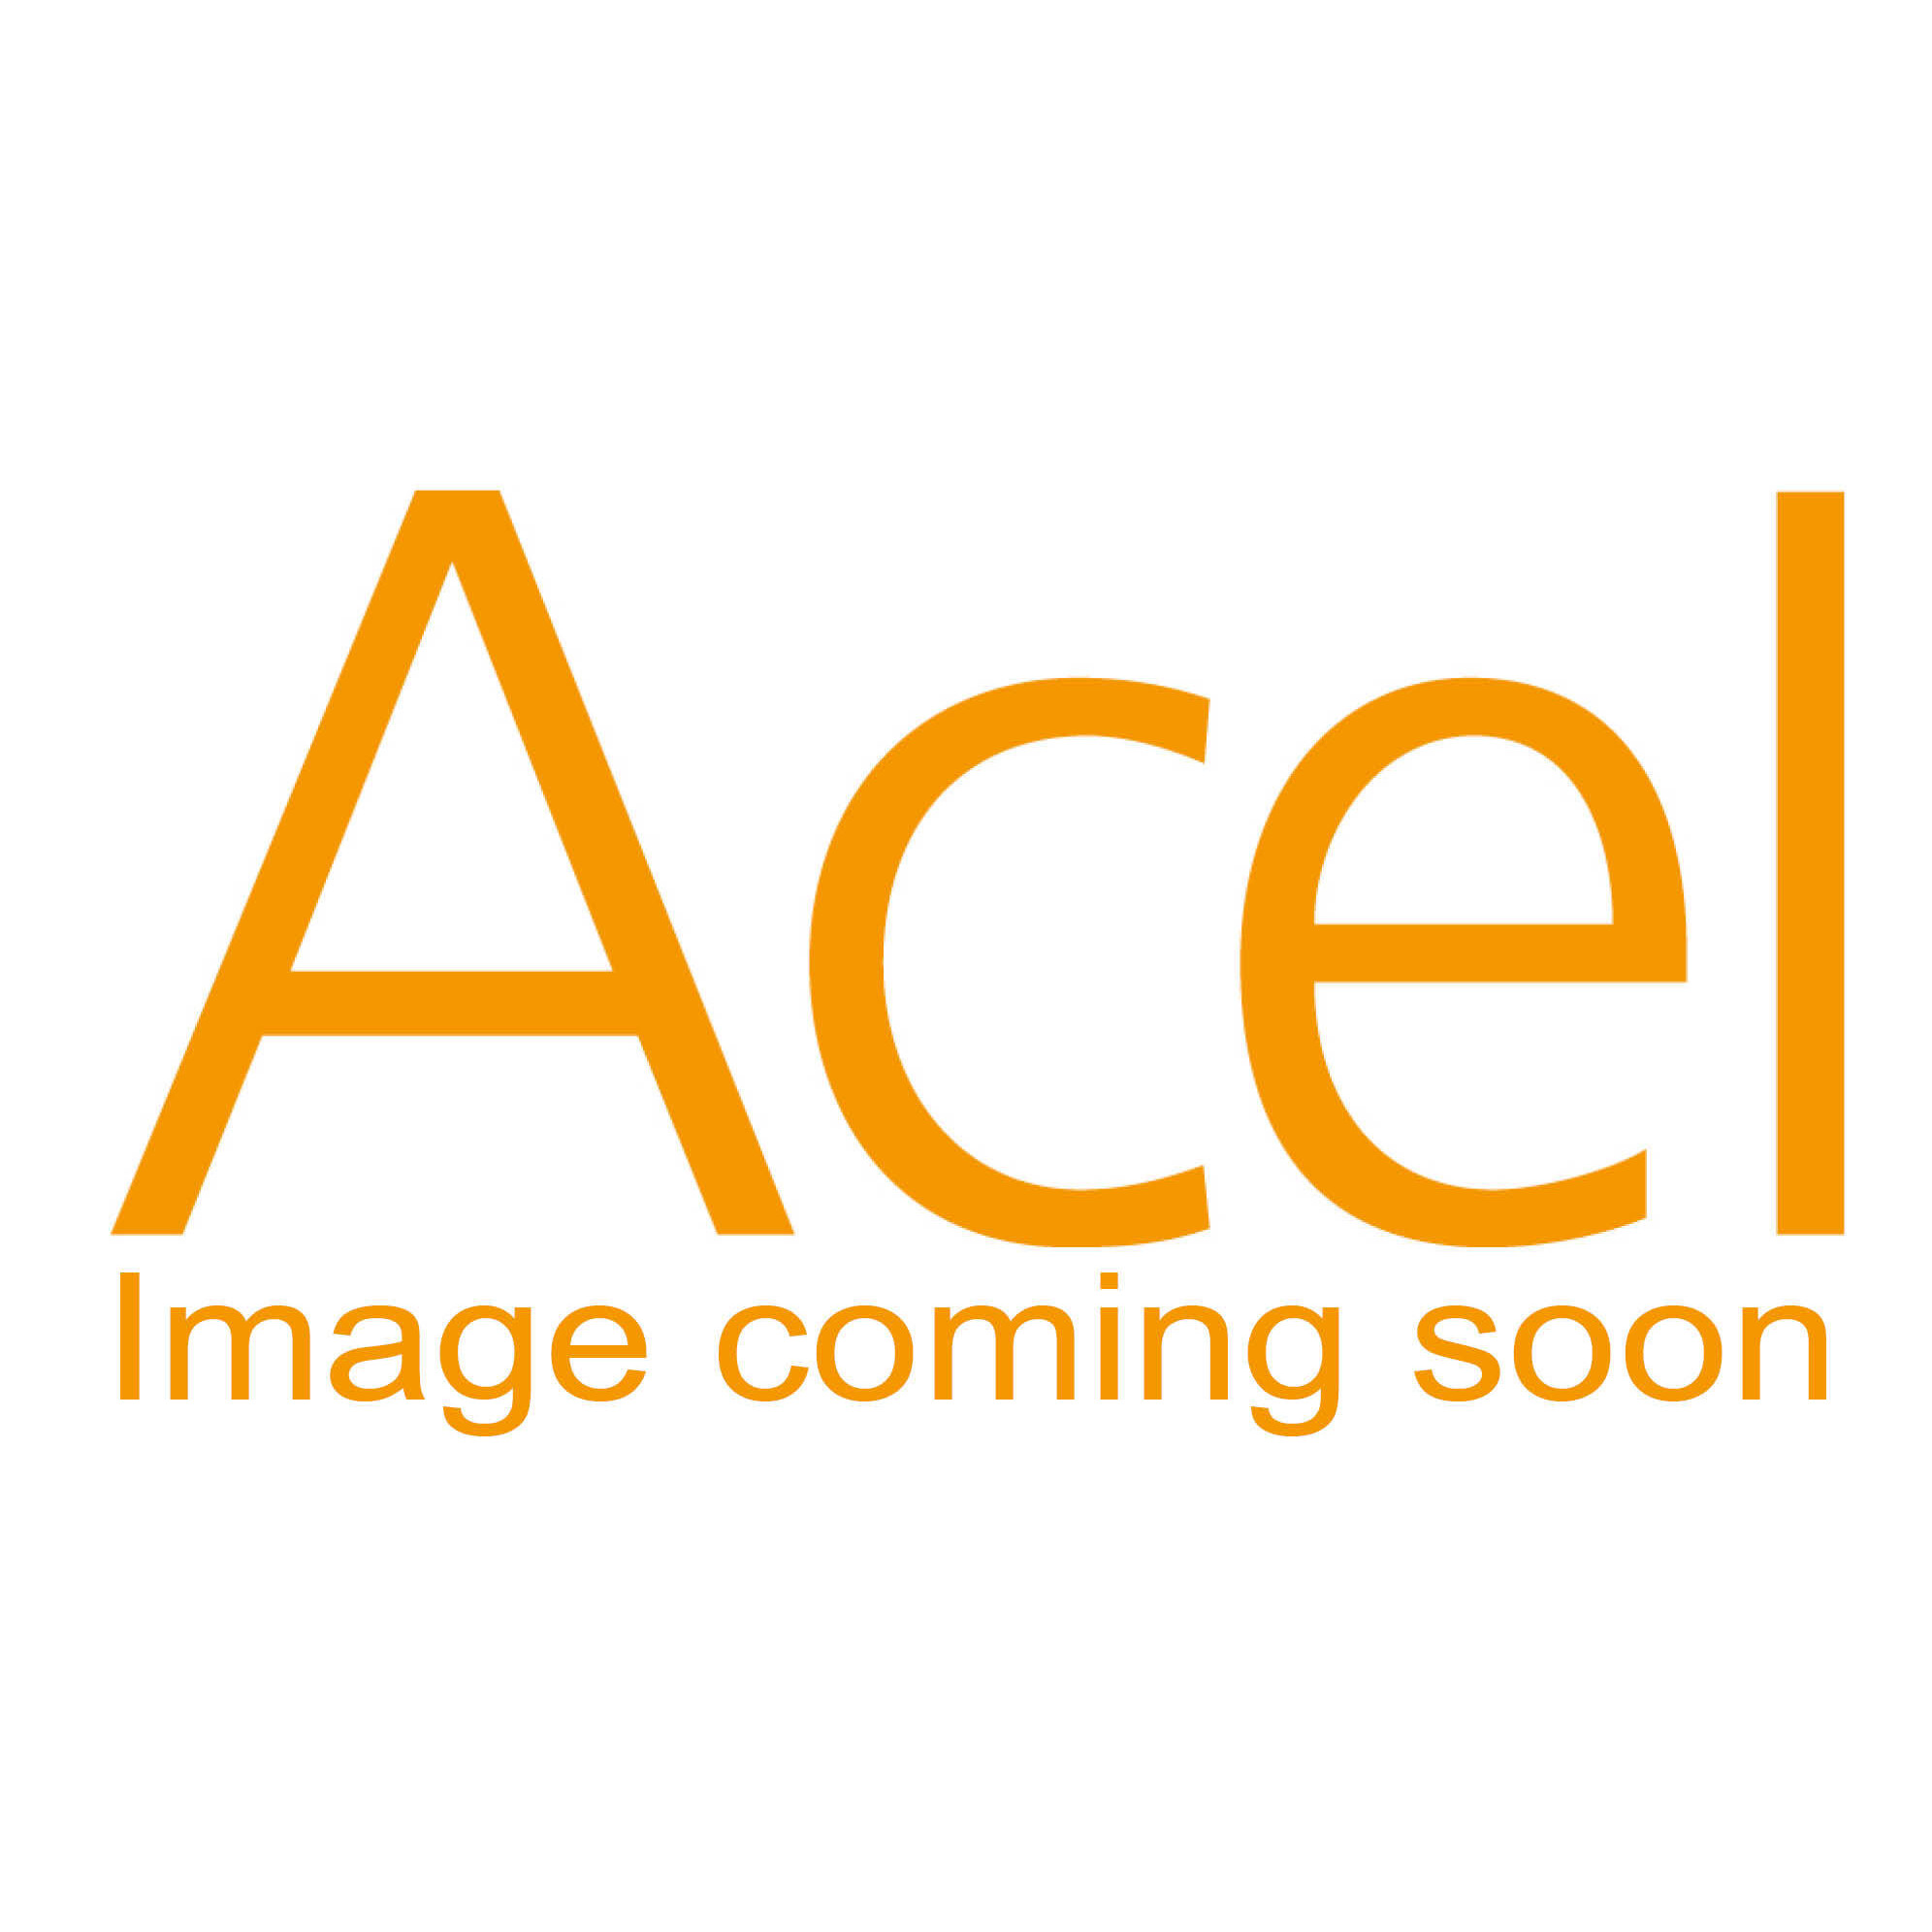 Self Adhesive Vinyl labels - No smoking entrance sticker - 150 x 225mm - 1 each